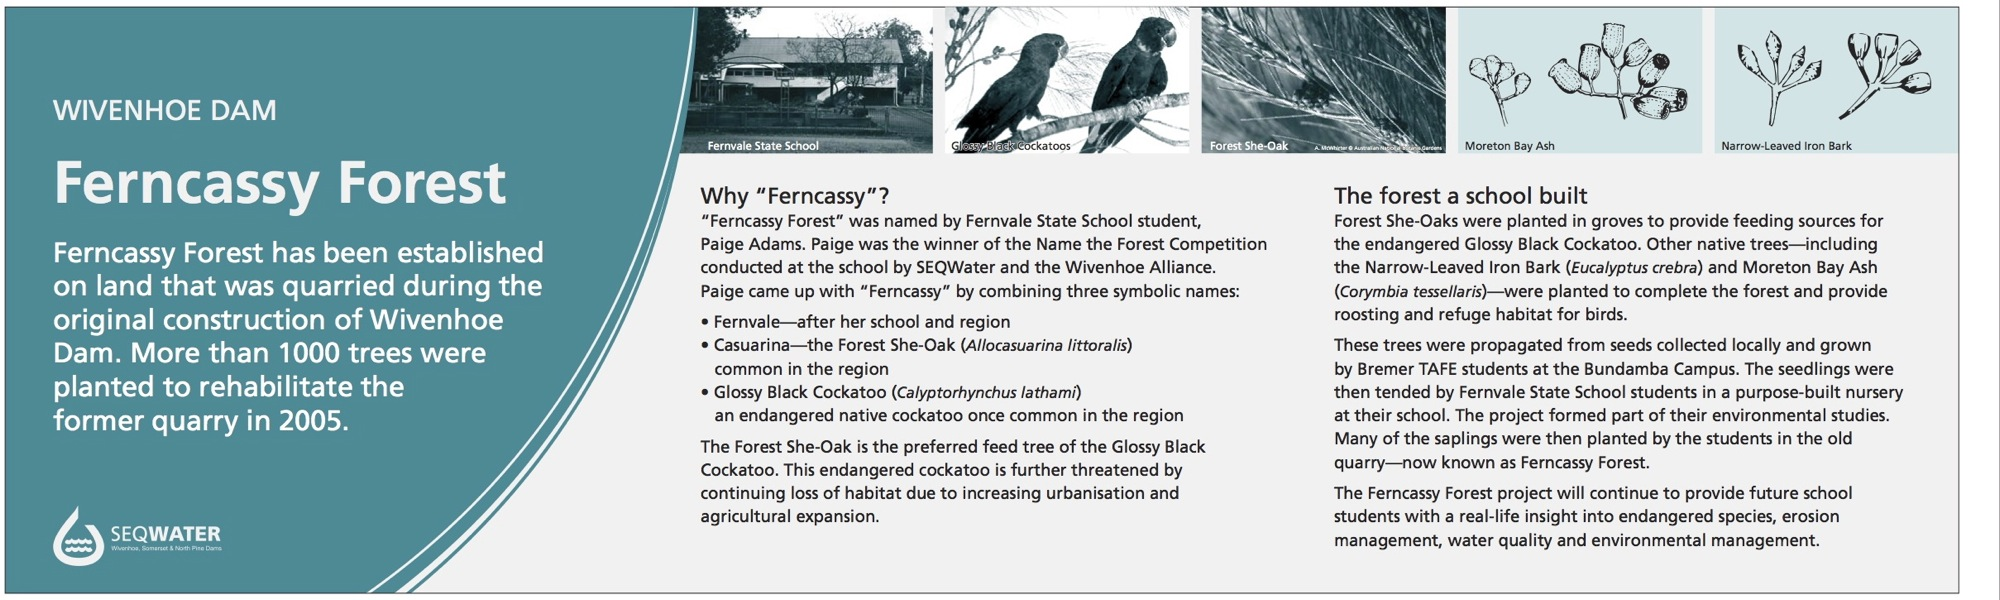 Wivenhoe Dam interpretive signage - Ferncassy Forest